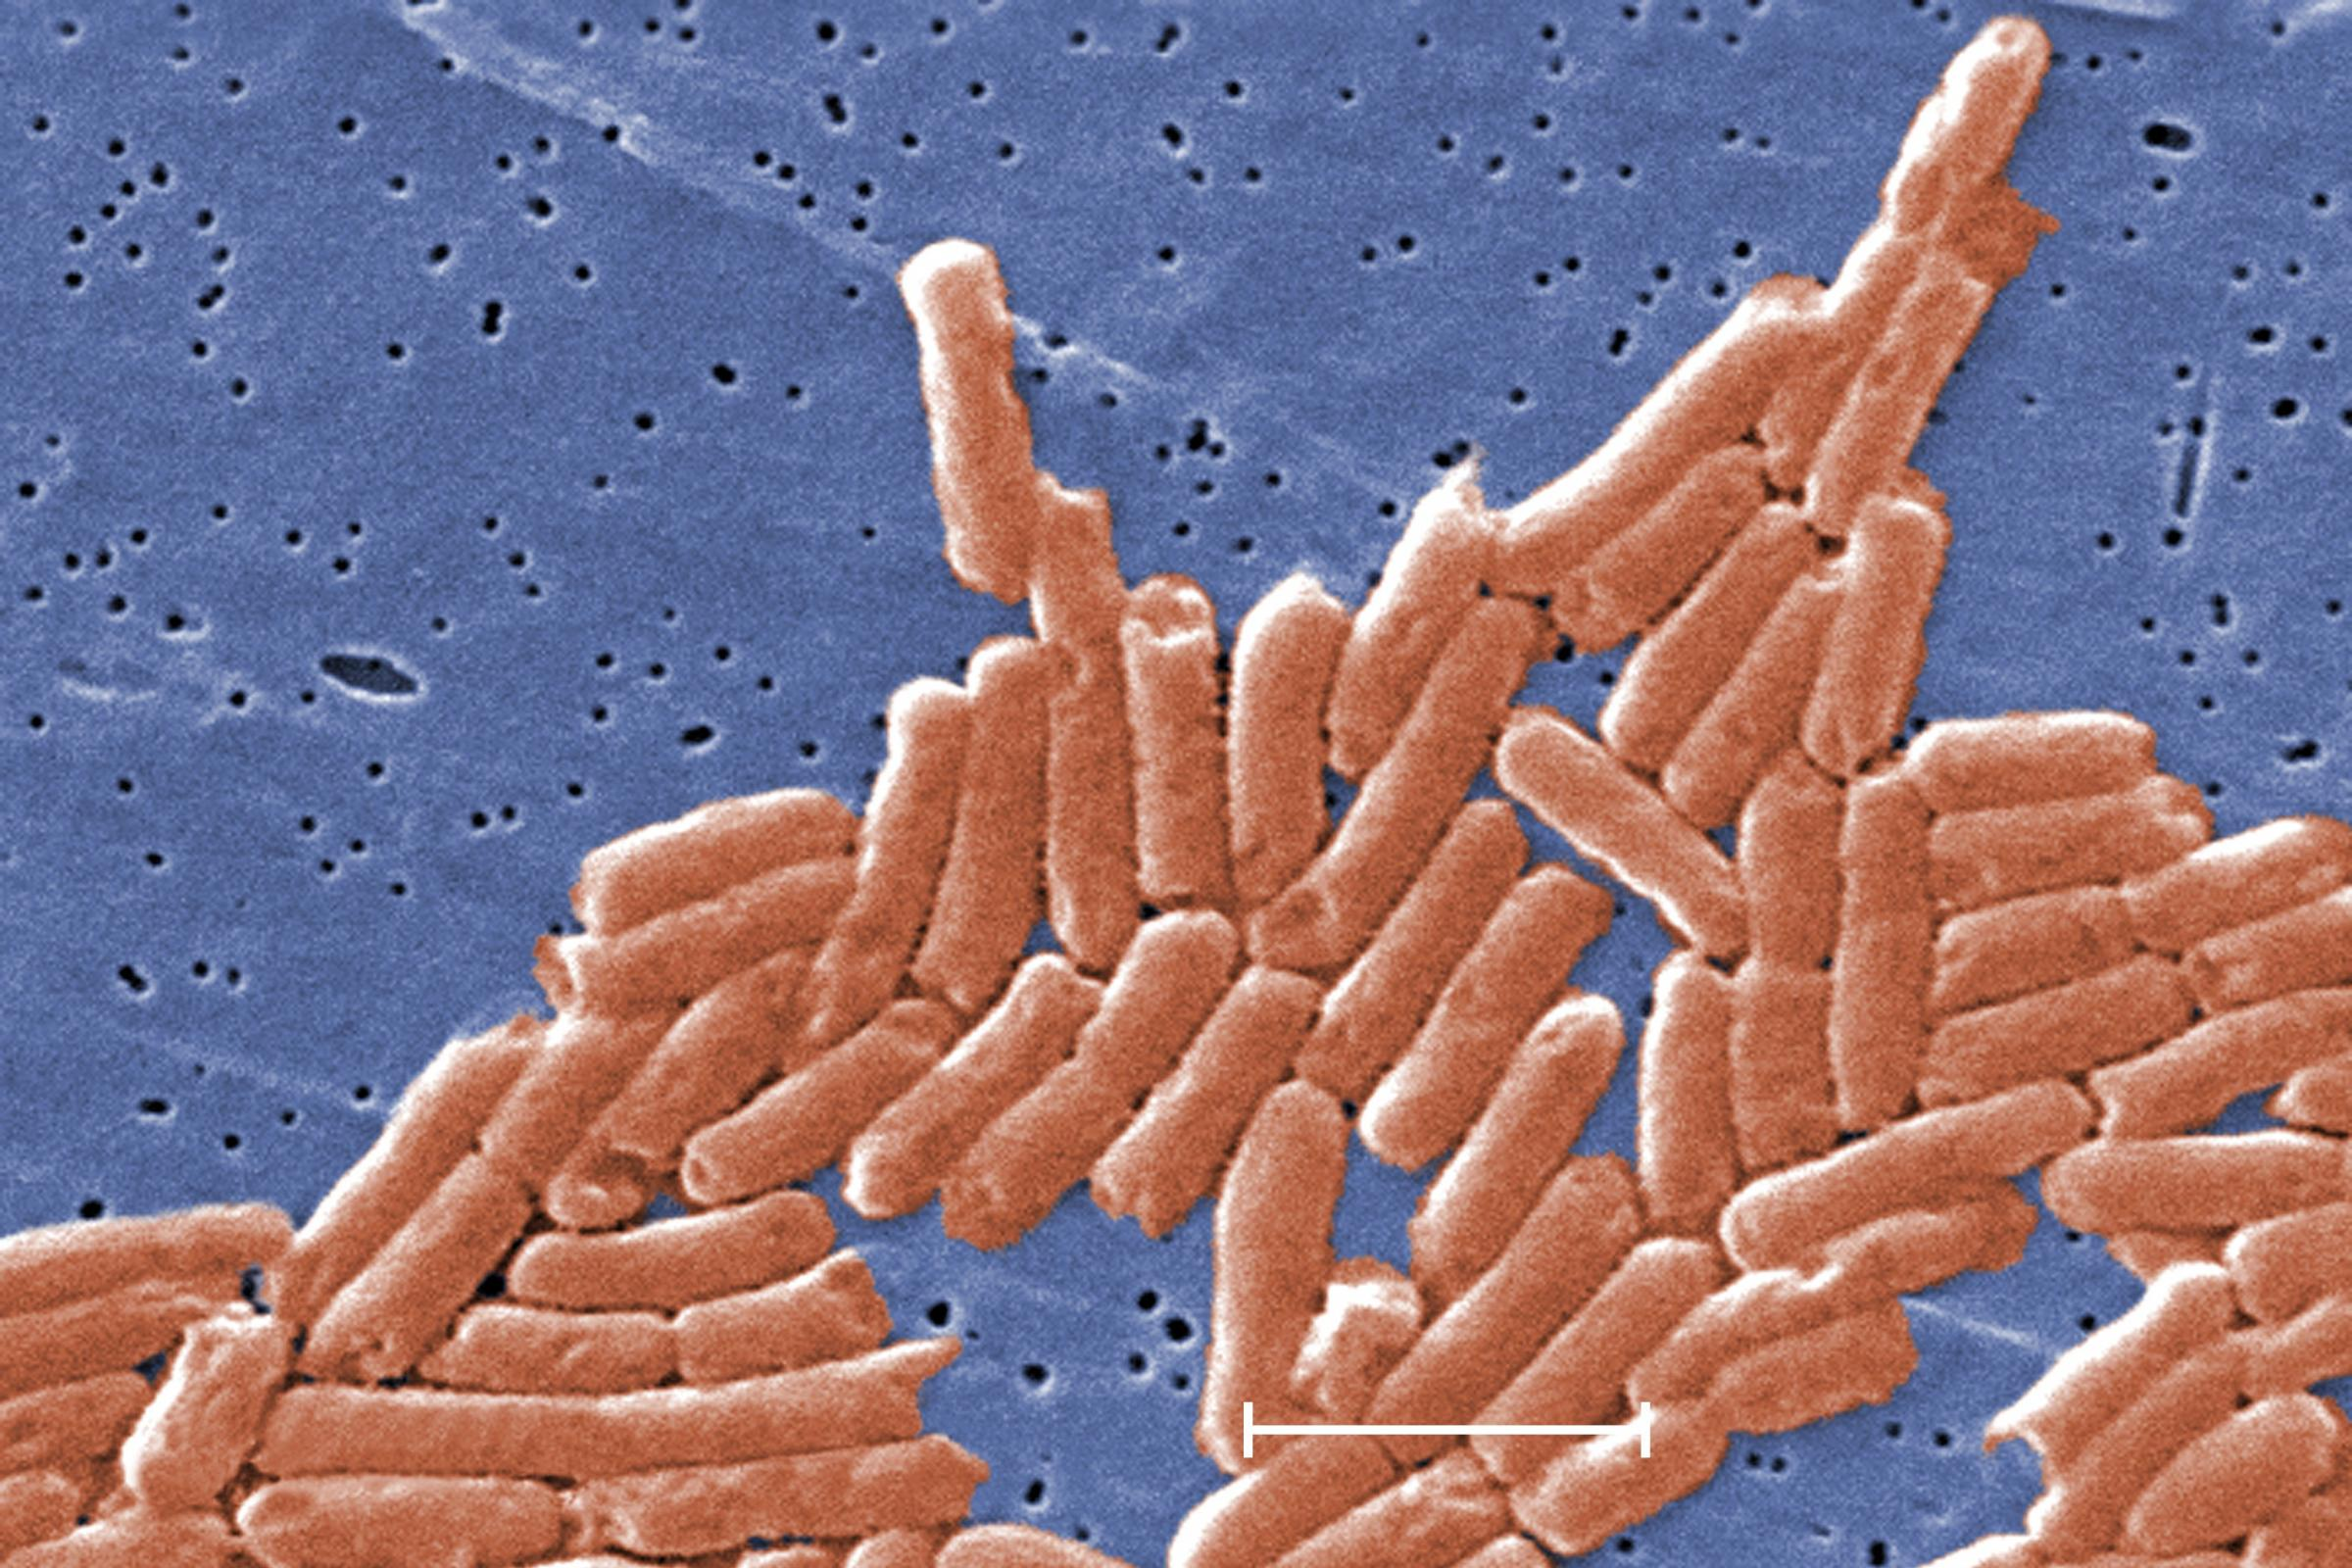 Salmonella research 'could help in development of new treatments' - Richmond and Twickenham Times